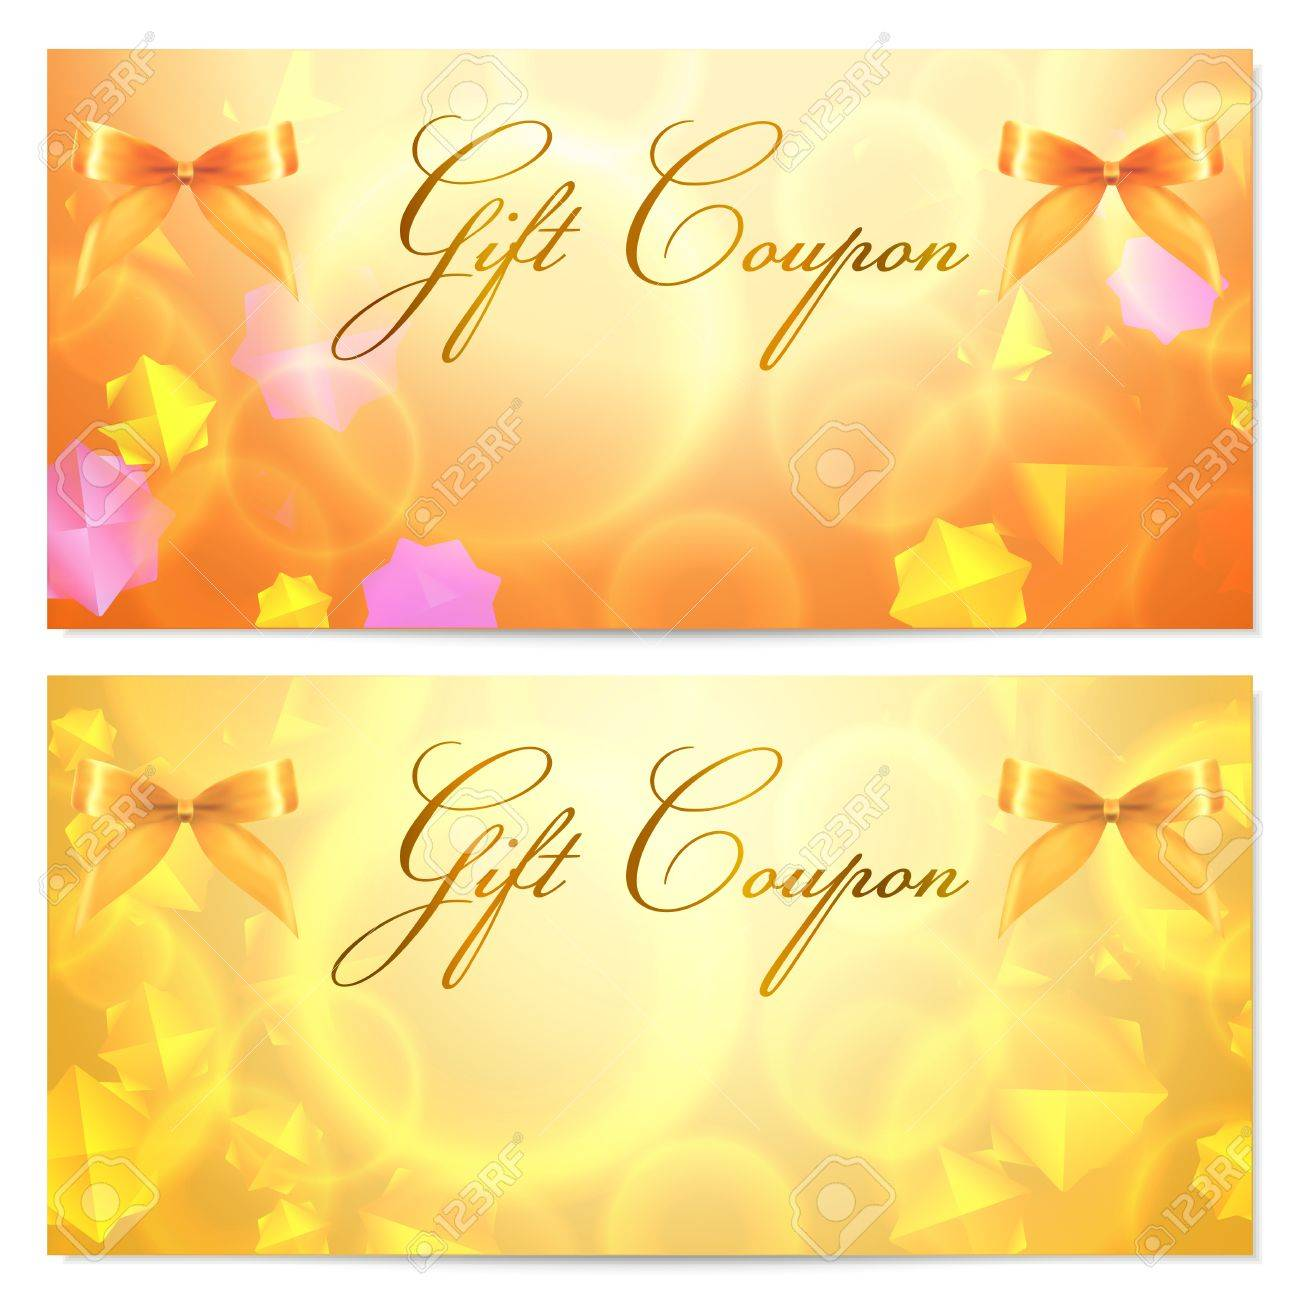 gift coupon template abstract stars pattern and bow ribbons gift coupon template abstract stars pattern and bow ribbons stock vector 17801708